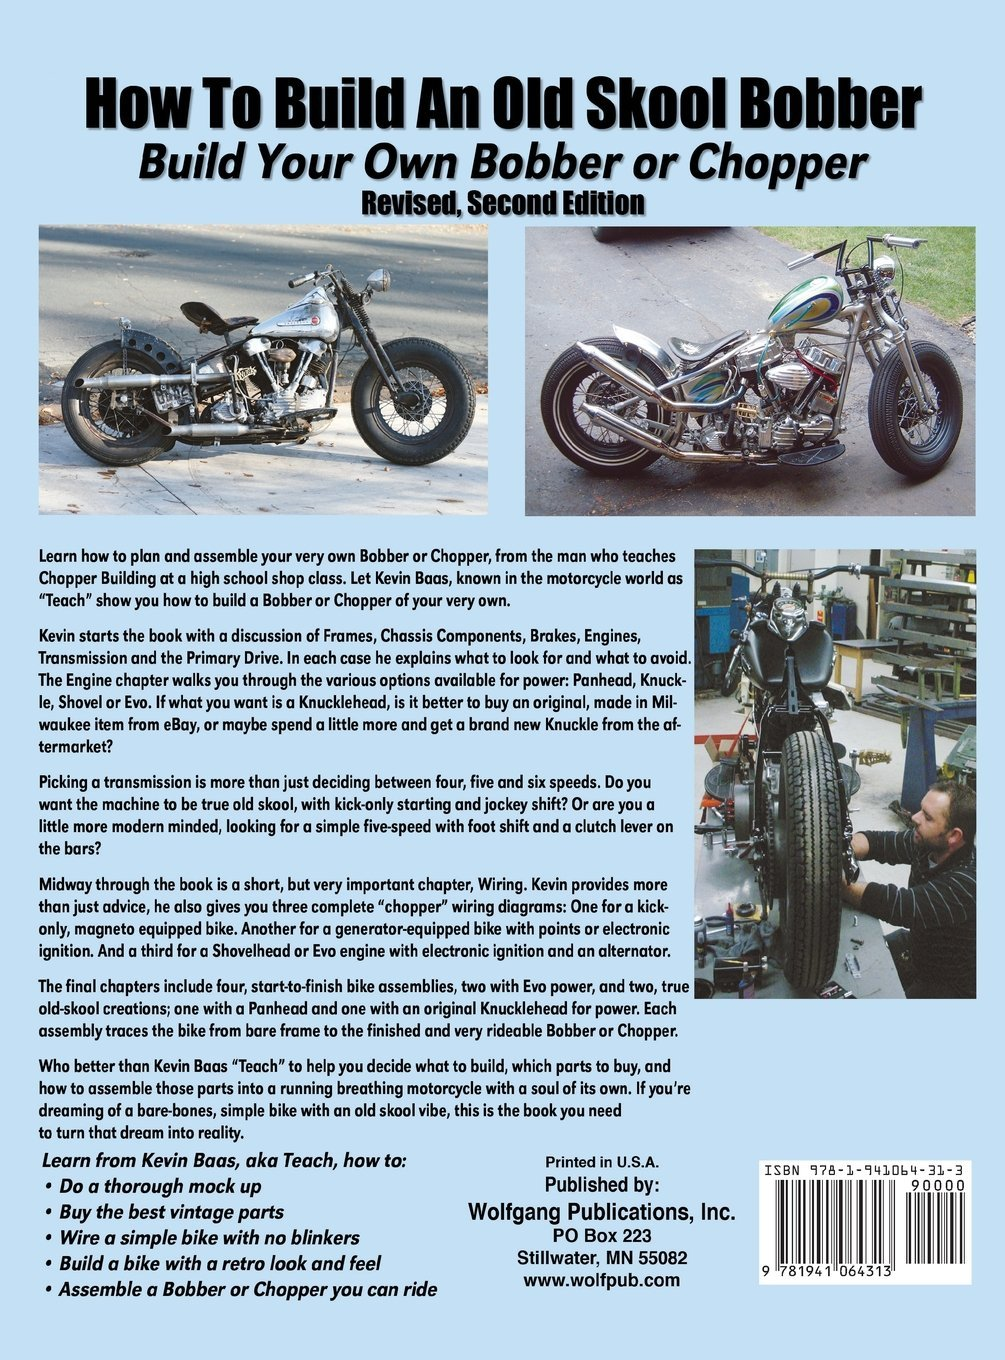 How To Build An Old Skool Bobber Your Own Or Chopper Infernal Combustion Root Beer Shovelhead Kevin Baas 9781941064313 Books